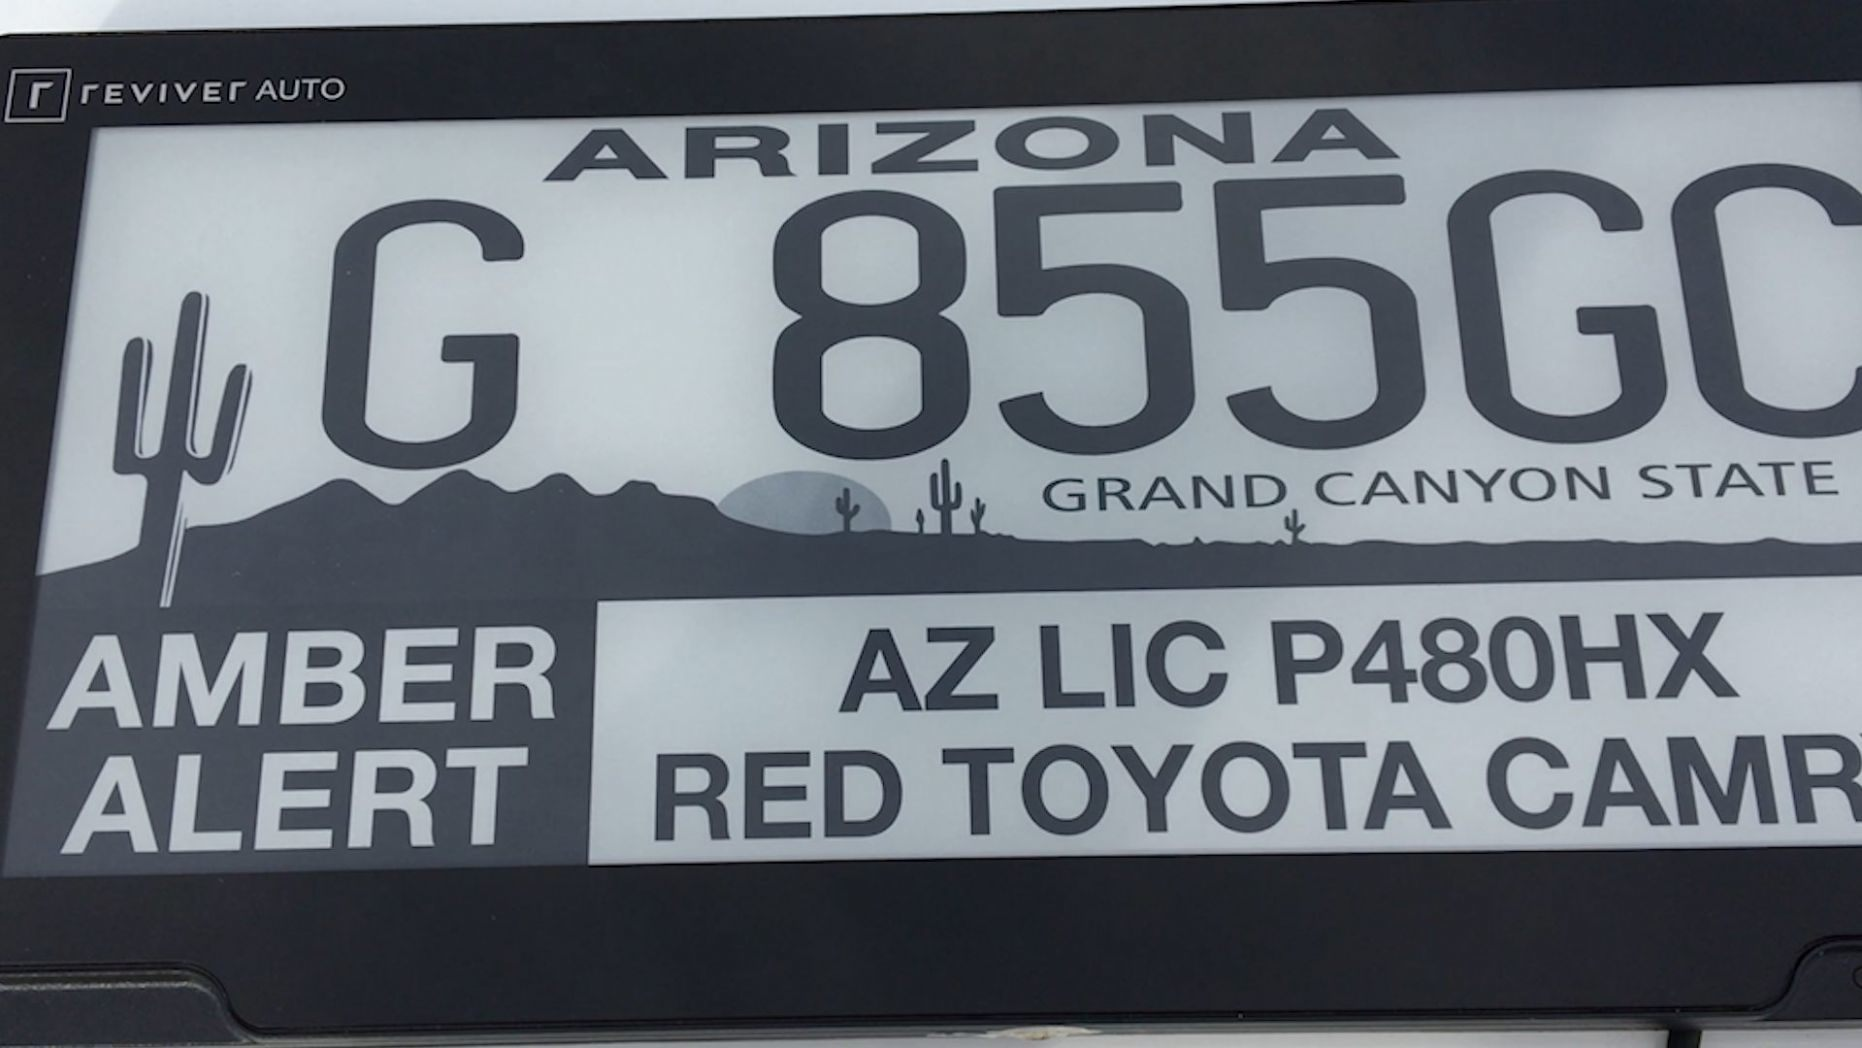 Digital license plates that cost whopping $499 now an option for Arizona drivers